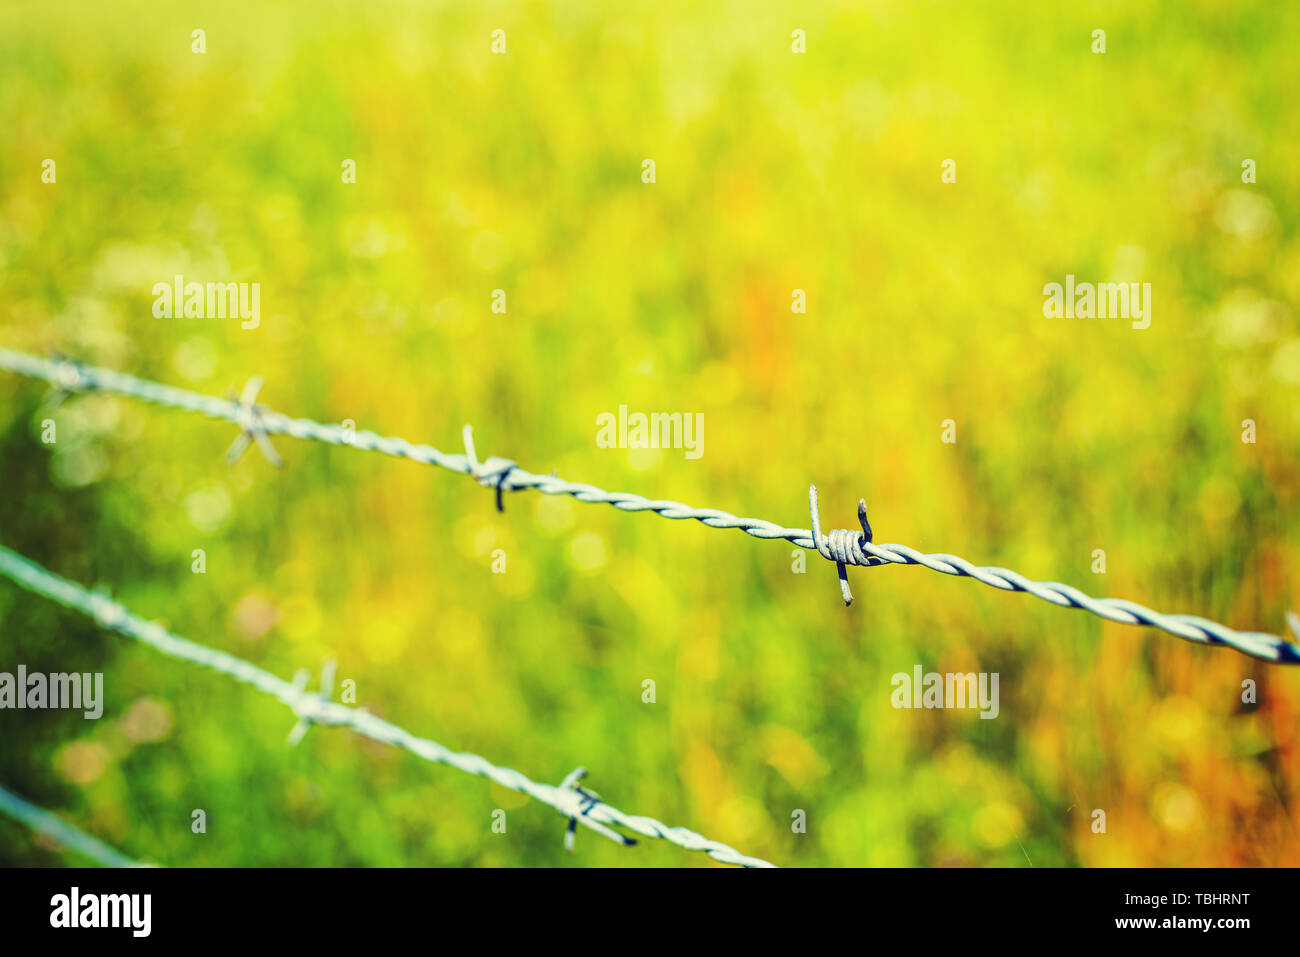 Close up of a barb wire with green grass on the background - Stock Image